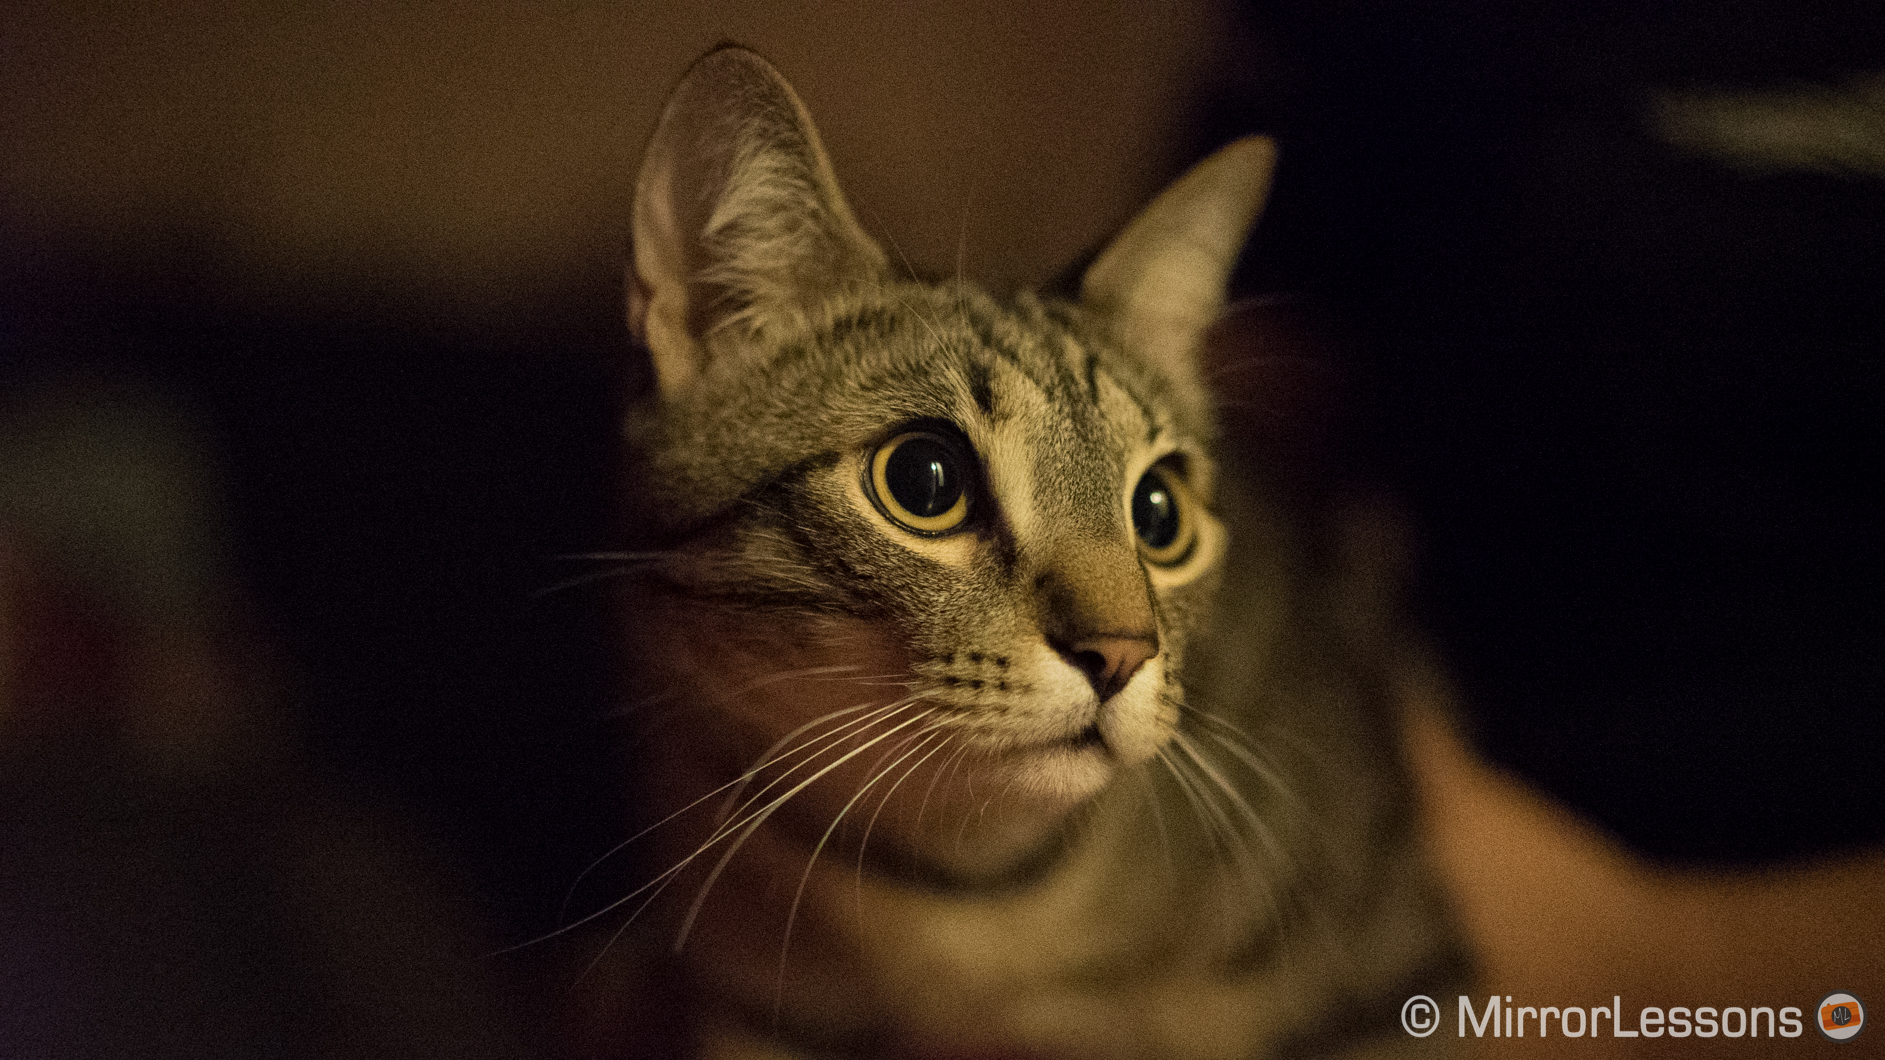 ILCE-7S, 1/125, f/ 18/10, ISO 51200